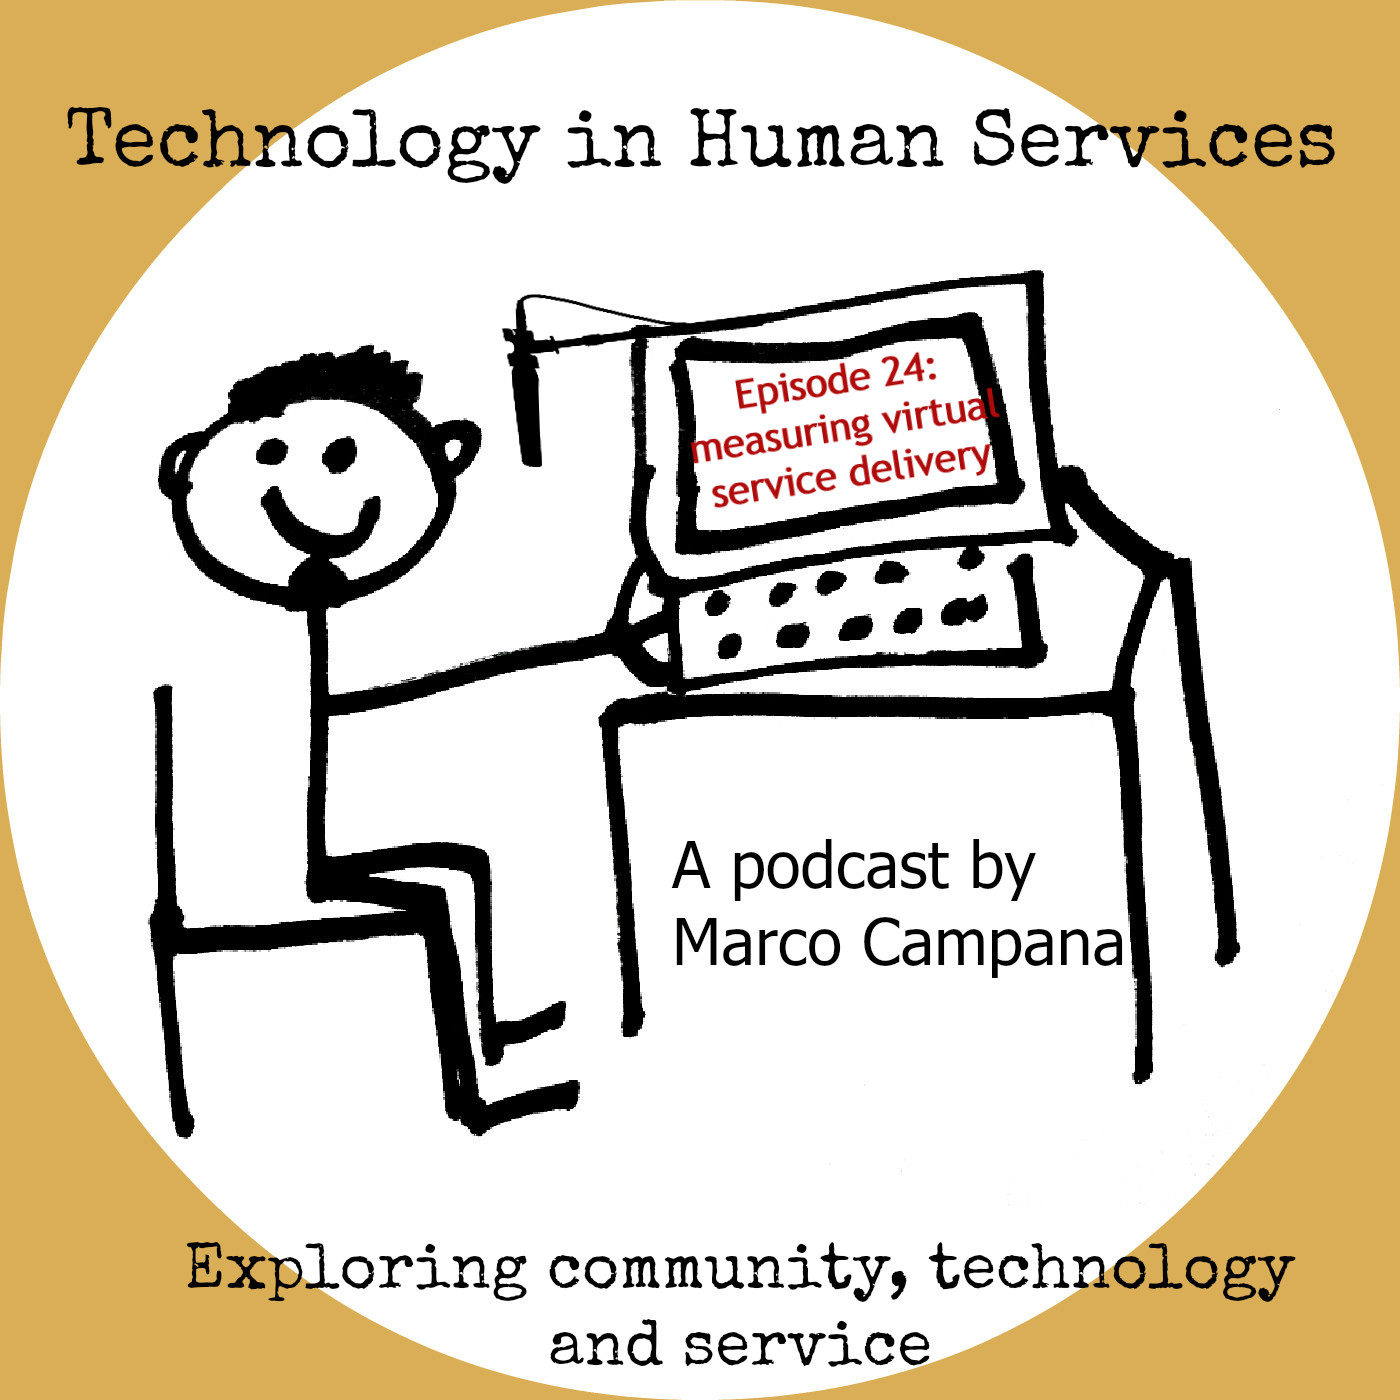 TiHS_Episode_24_measuring_virtual_service_delivery